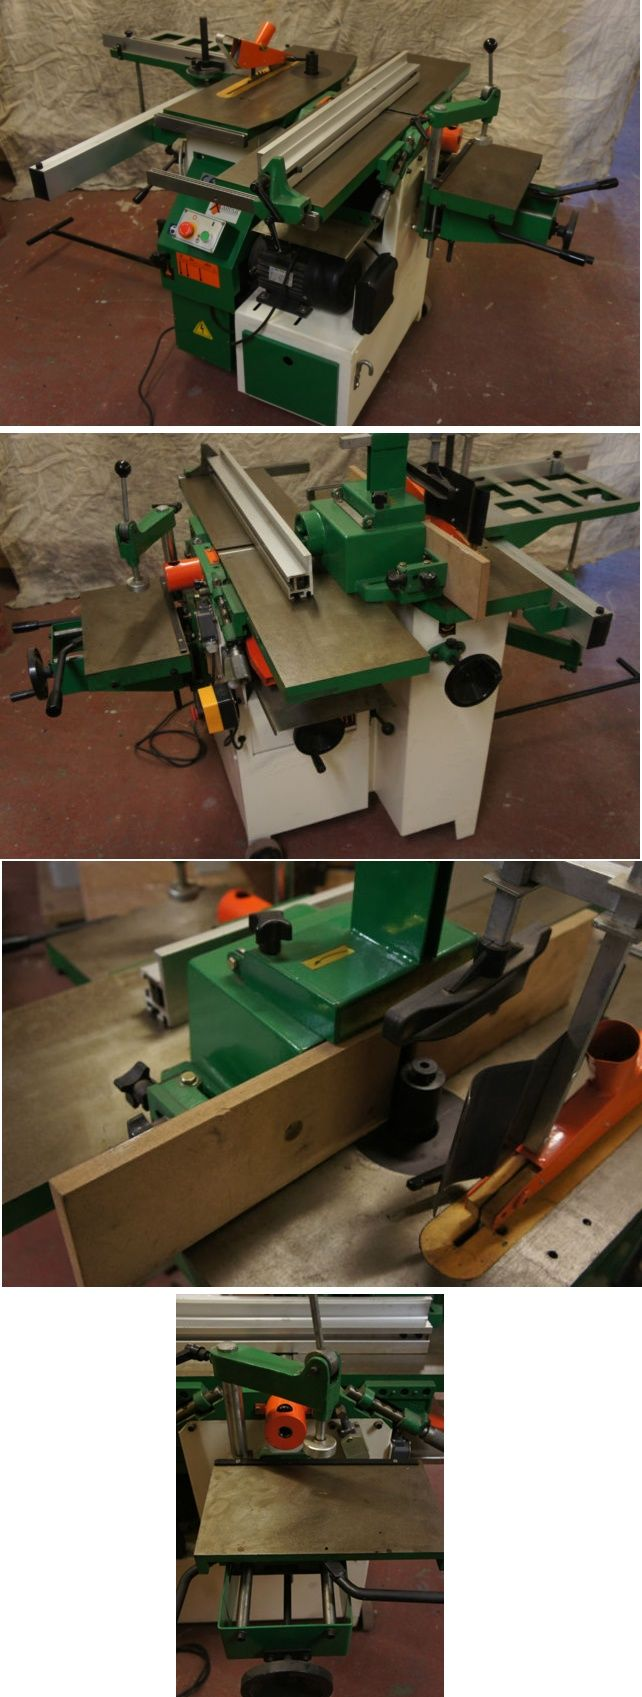 63 best Used Woodworking Machines images on Pinterest ...